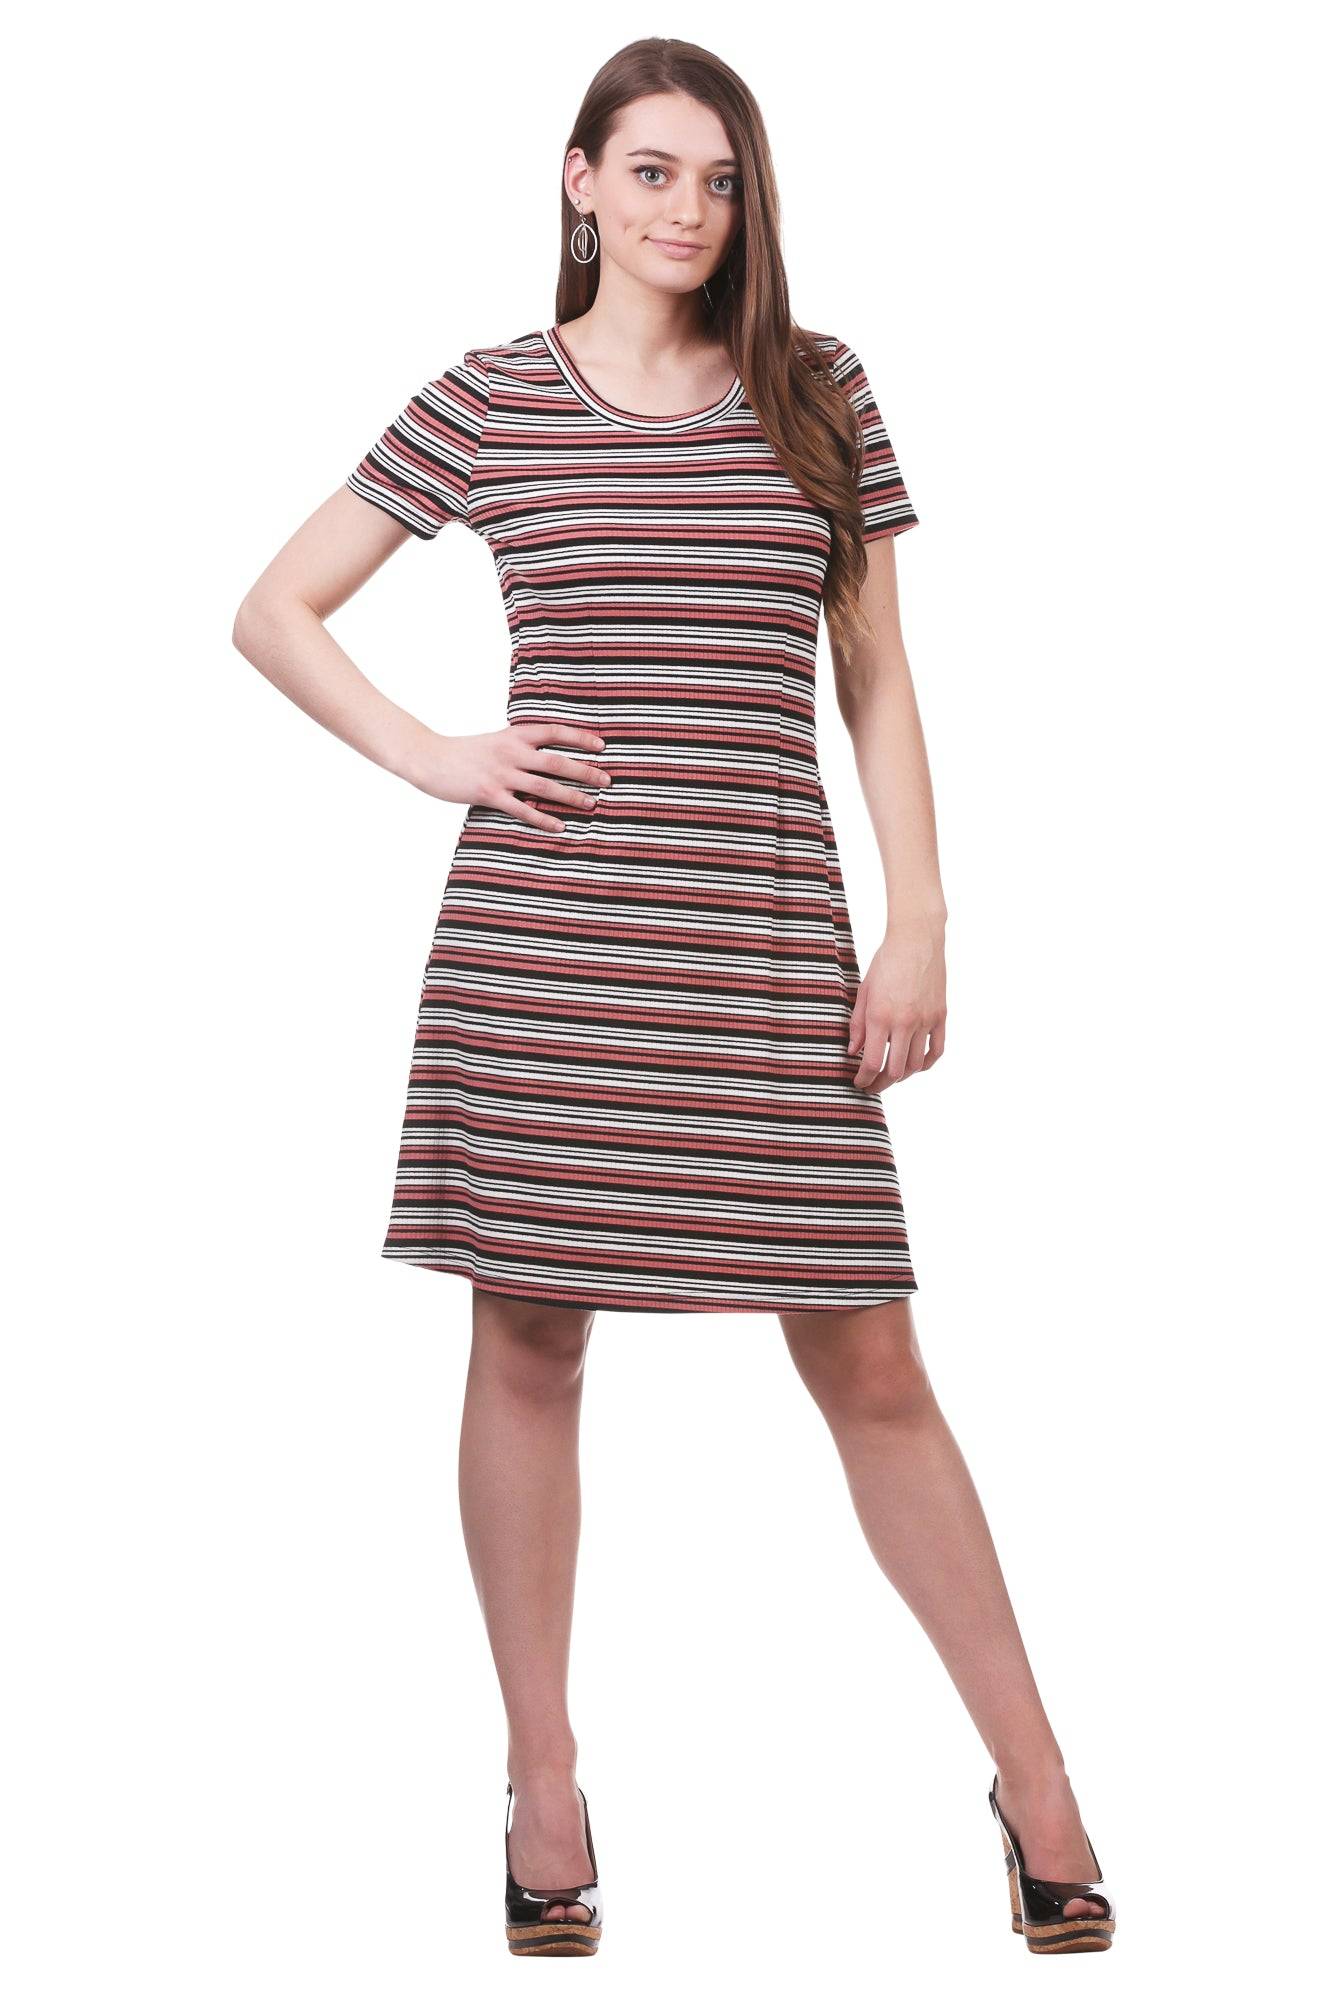 Women's Striped Rib Knit Tee Dress | Grey and Salmon Stripes | Neesha